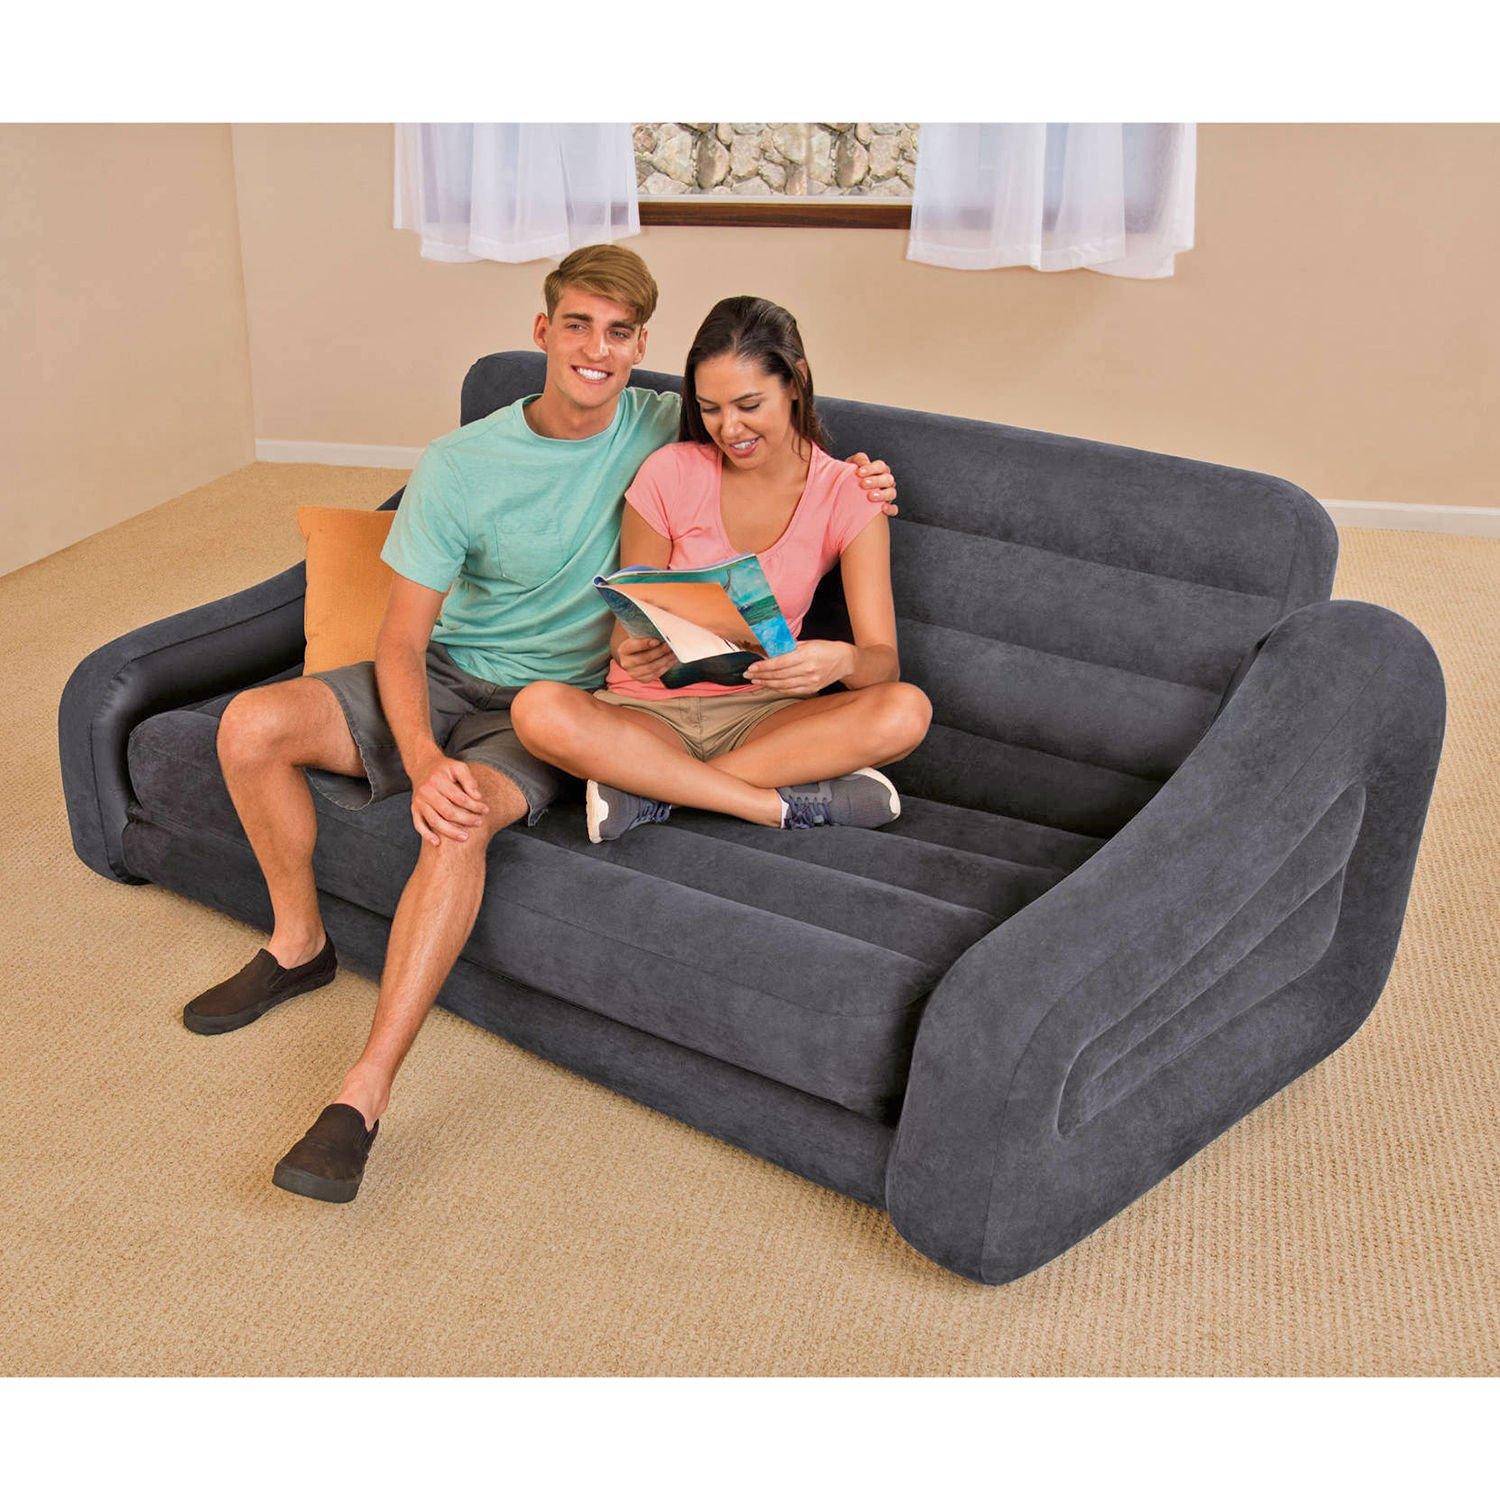 Couch Bed Sofa Sectional Sleeper Futon Living Room Furniture Loveseat Guest NEW by Intex (Image #1)